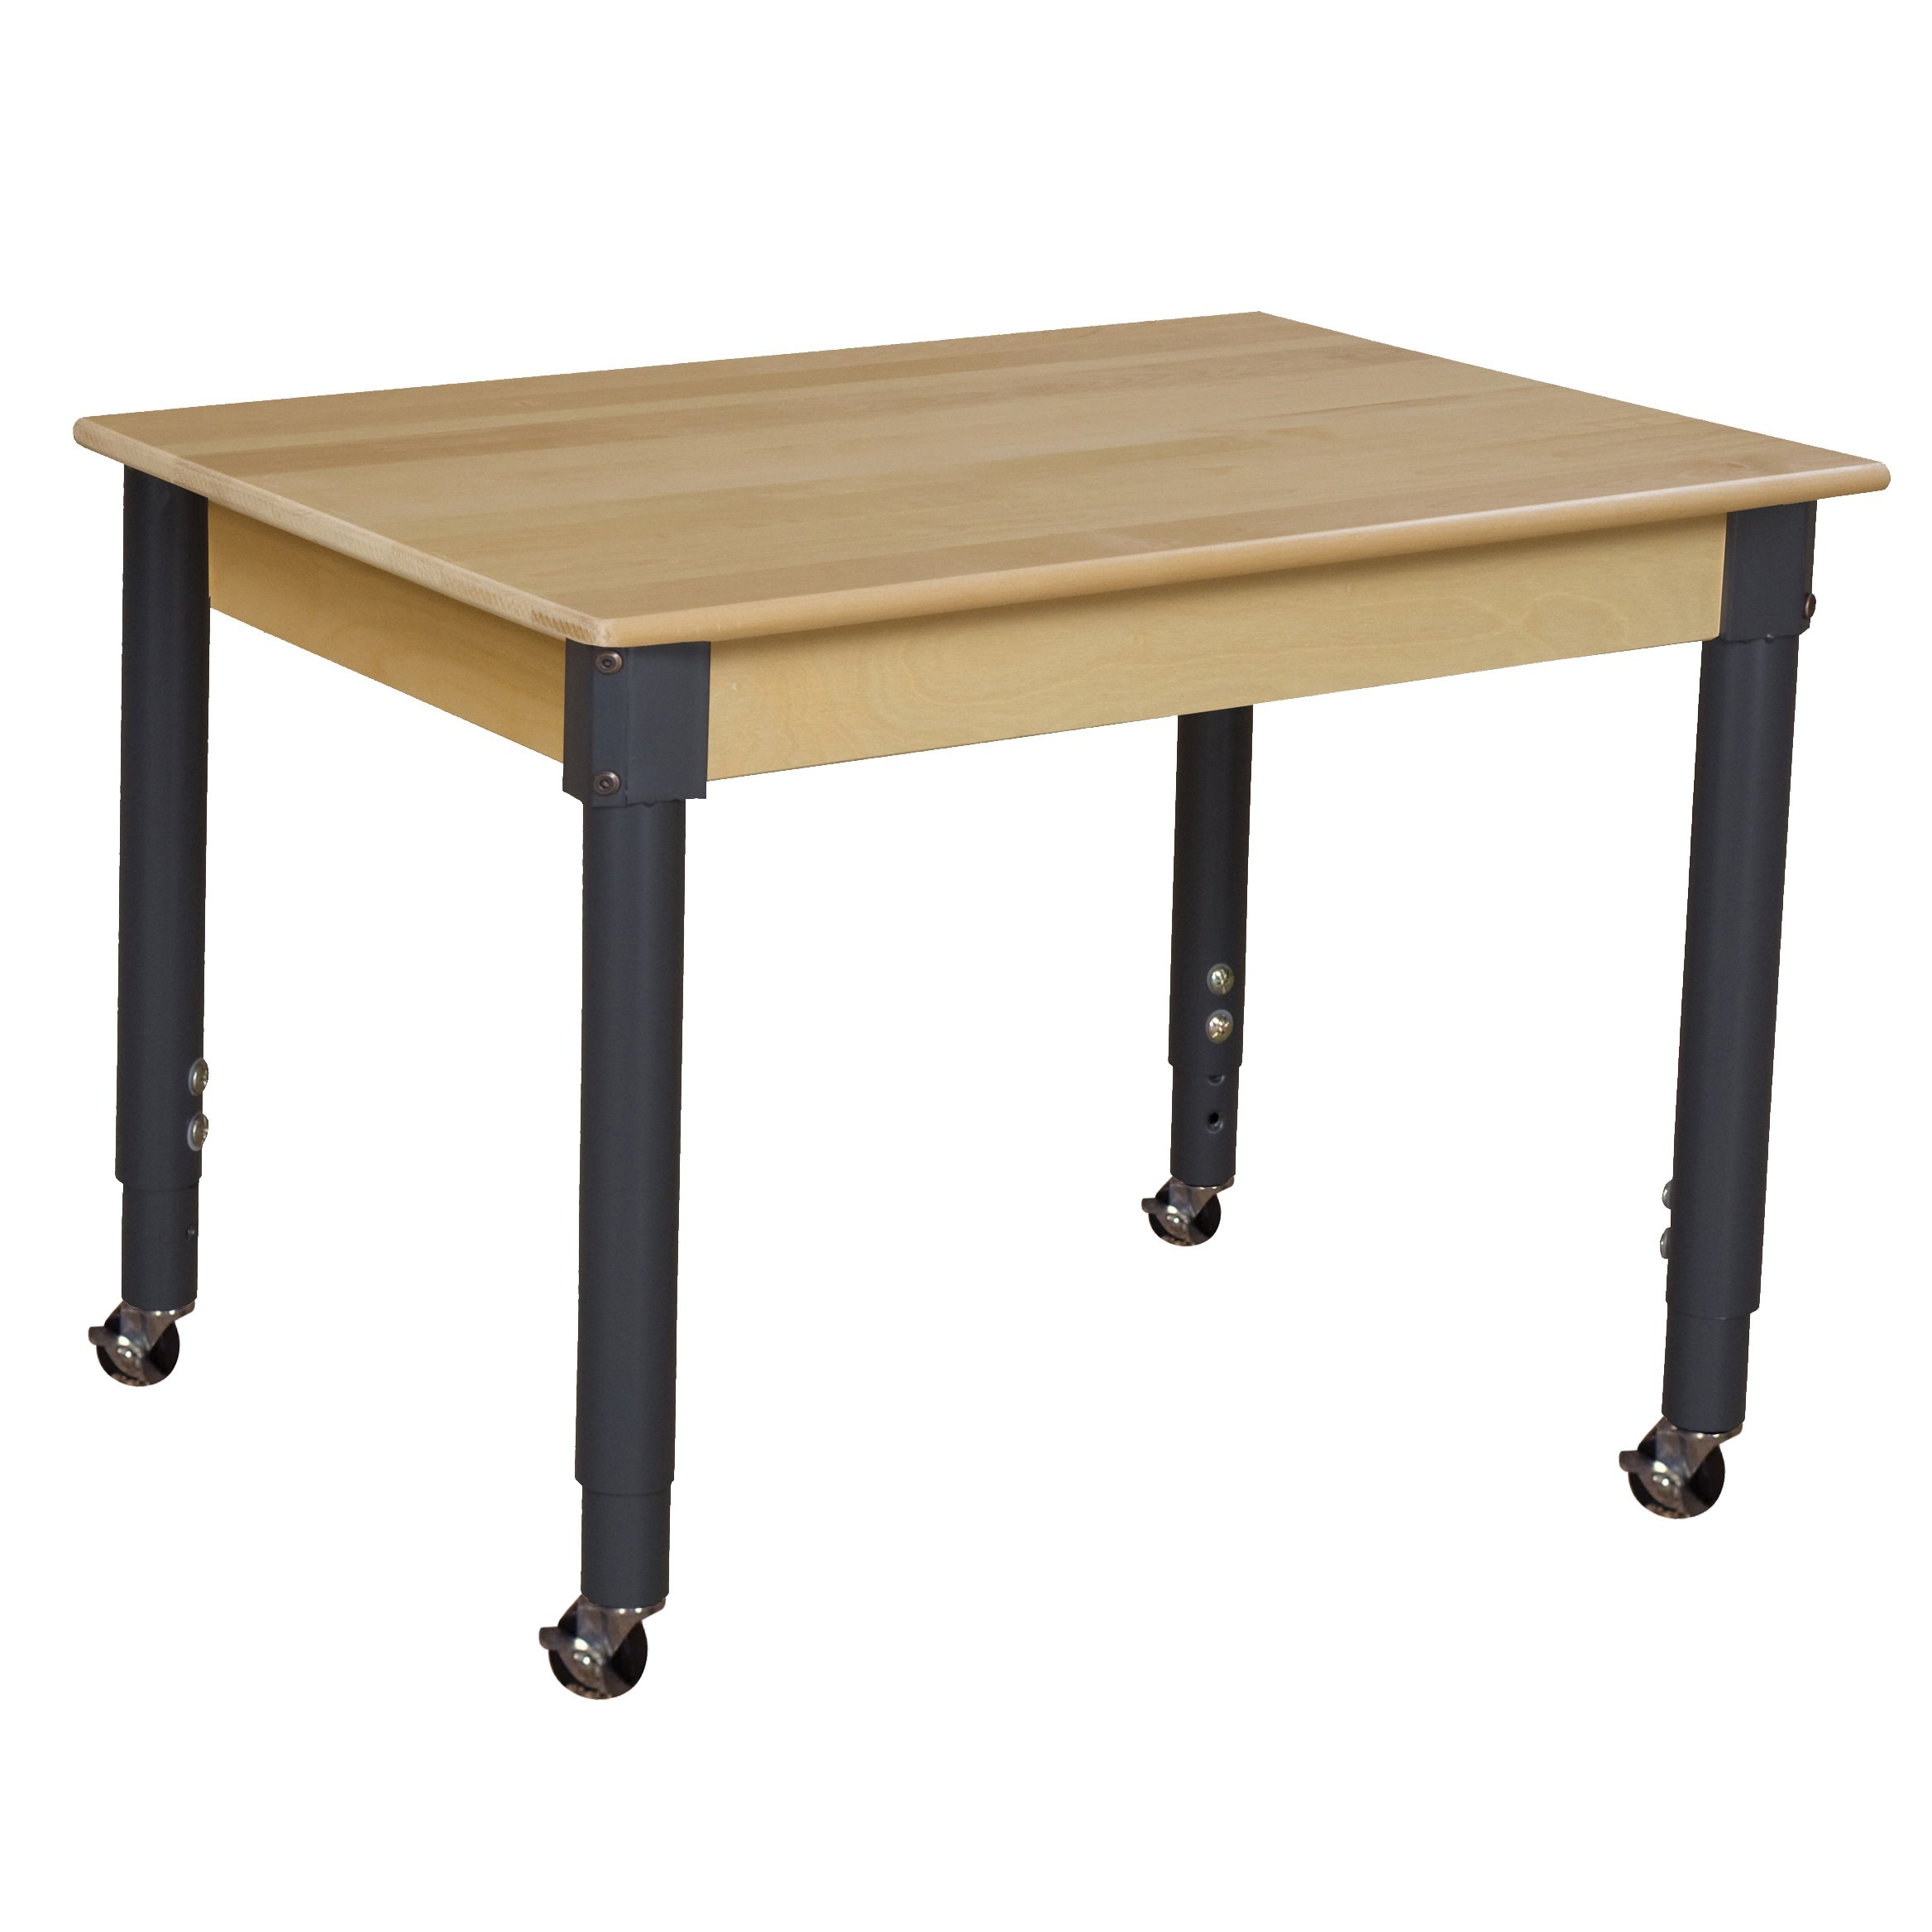 Wood Designs WD823A1829C6 - Mobile 24'' x 36'' Rectangle Hardwood Table with Adjustable Legs 20-31'' by Wood Designs (Image #1)